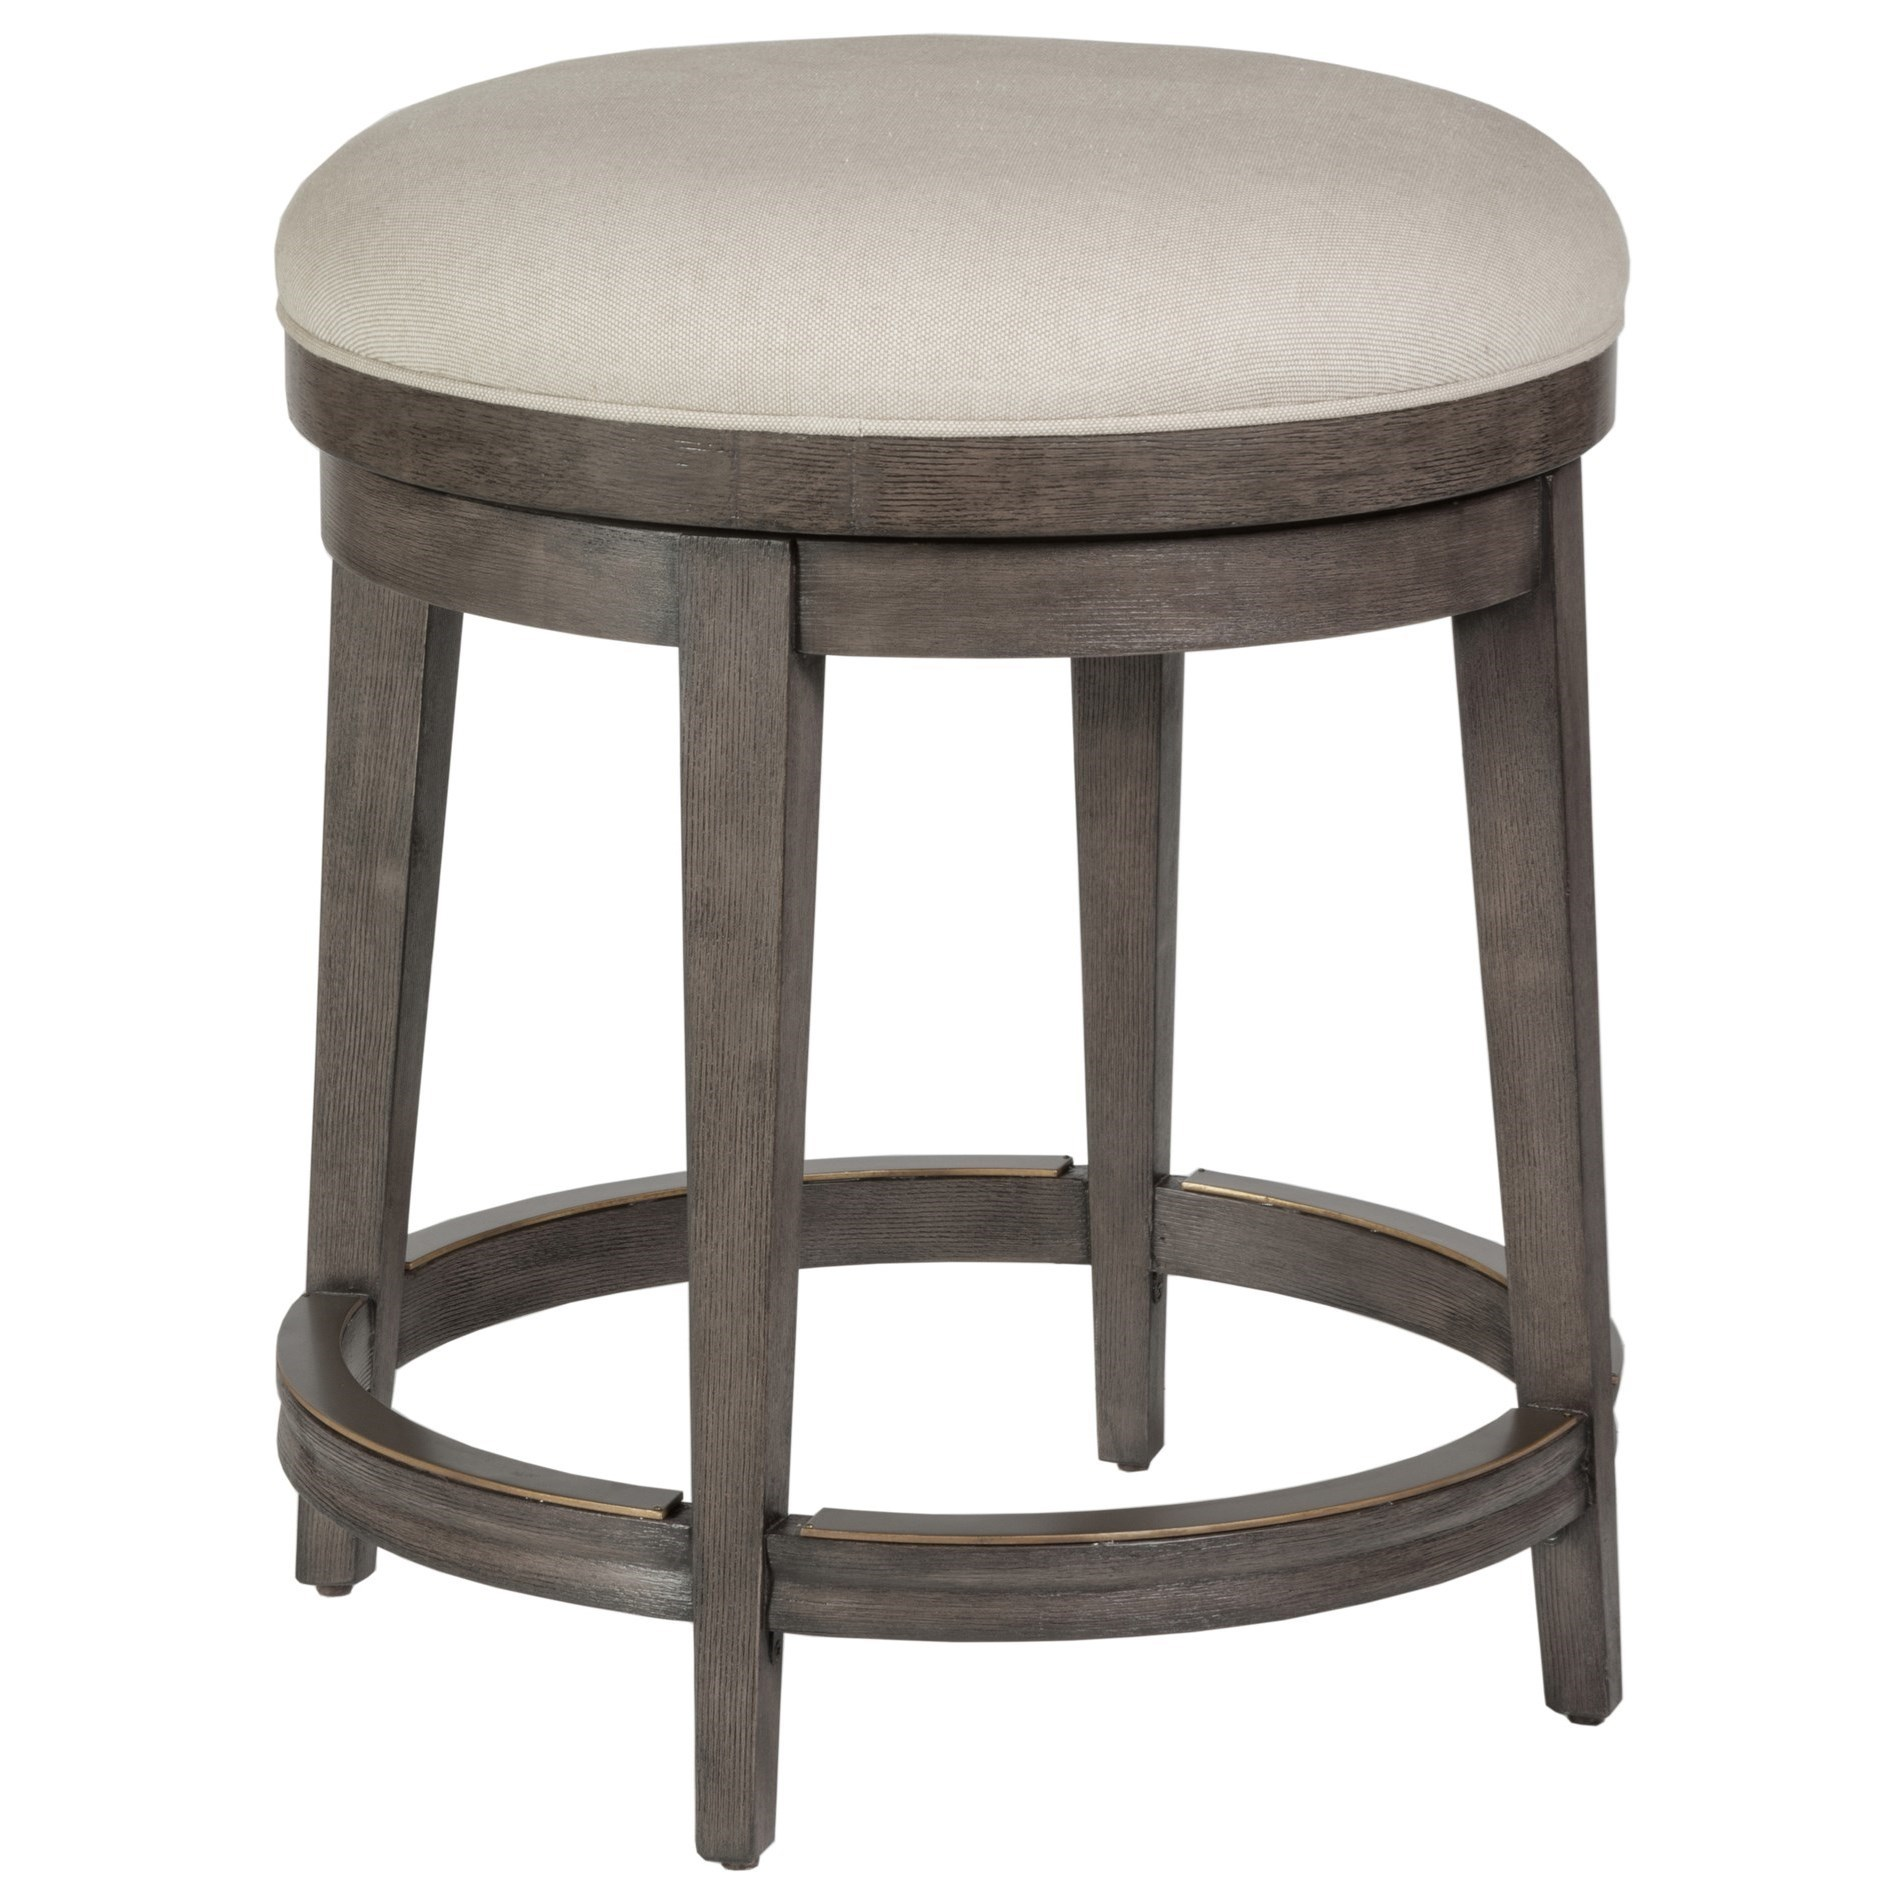 Cohesion Cecile Backless Swivel Counter Stool by Artistica at Baer's Furniture